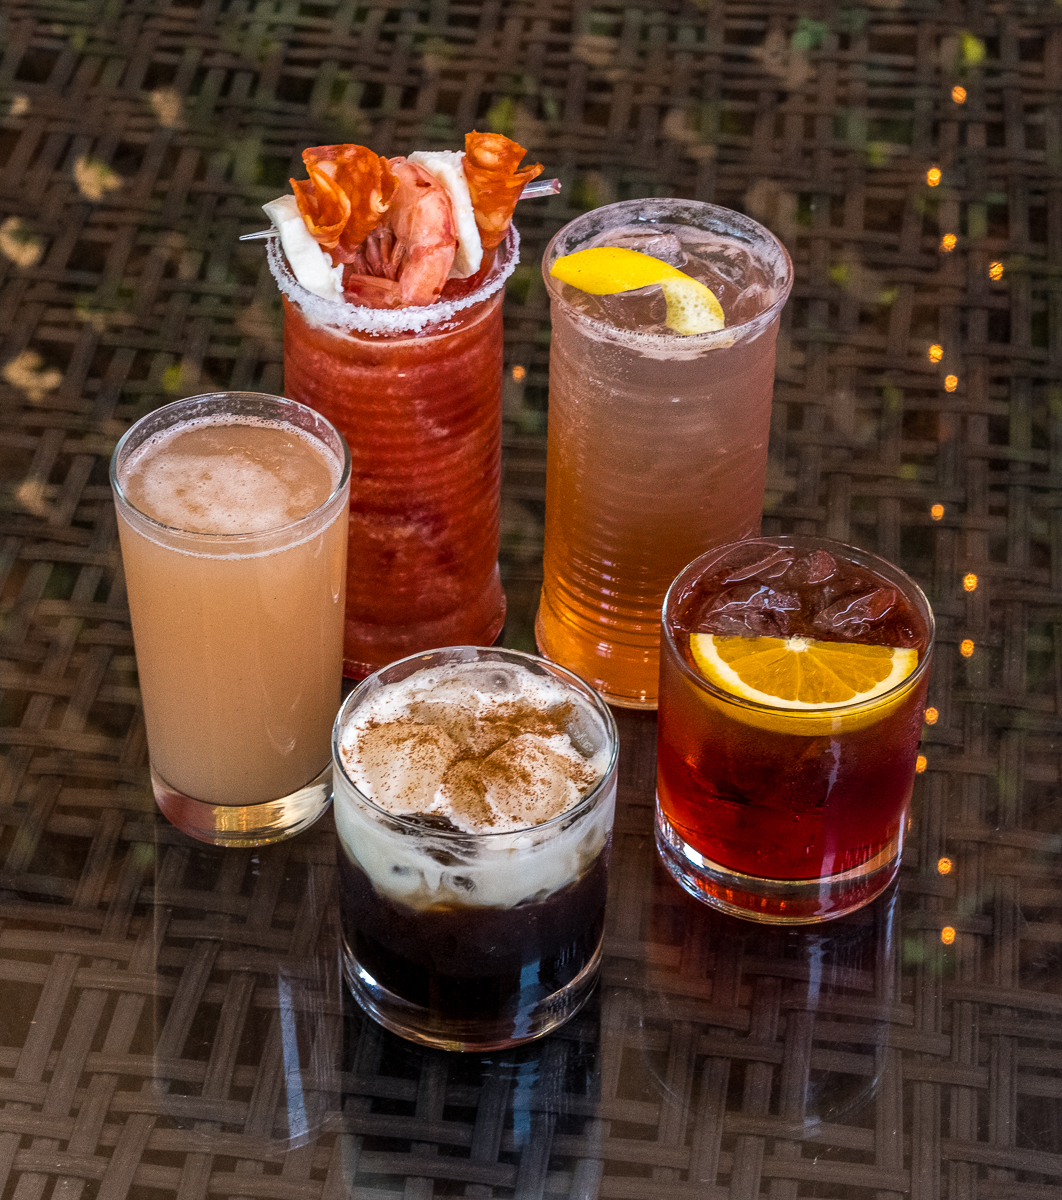 Clockwise from the front: Italian Iced Caffé, Bellini, Bloody Mary, Amalfi Coast High Ball, Negroni Sbagliato. Below: Aperol Spritz and the Mimosa Bar (Prosecco with a selection of juices).